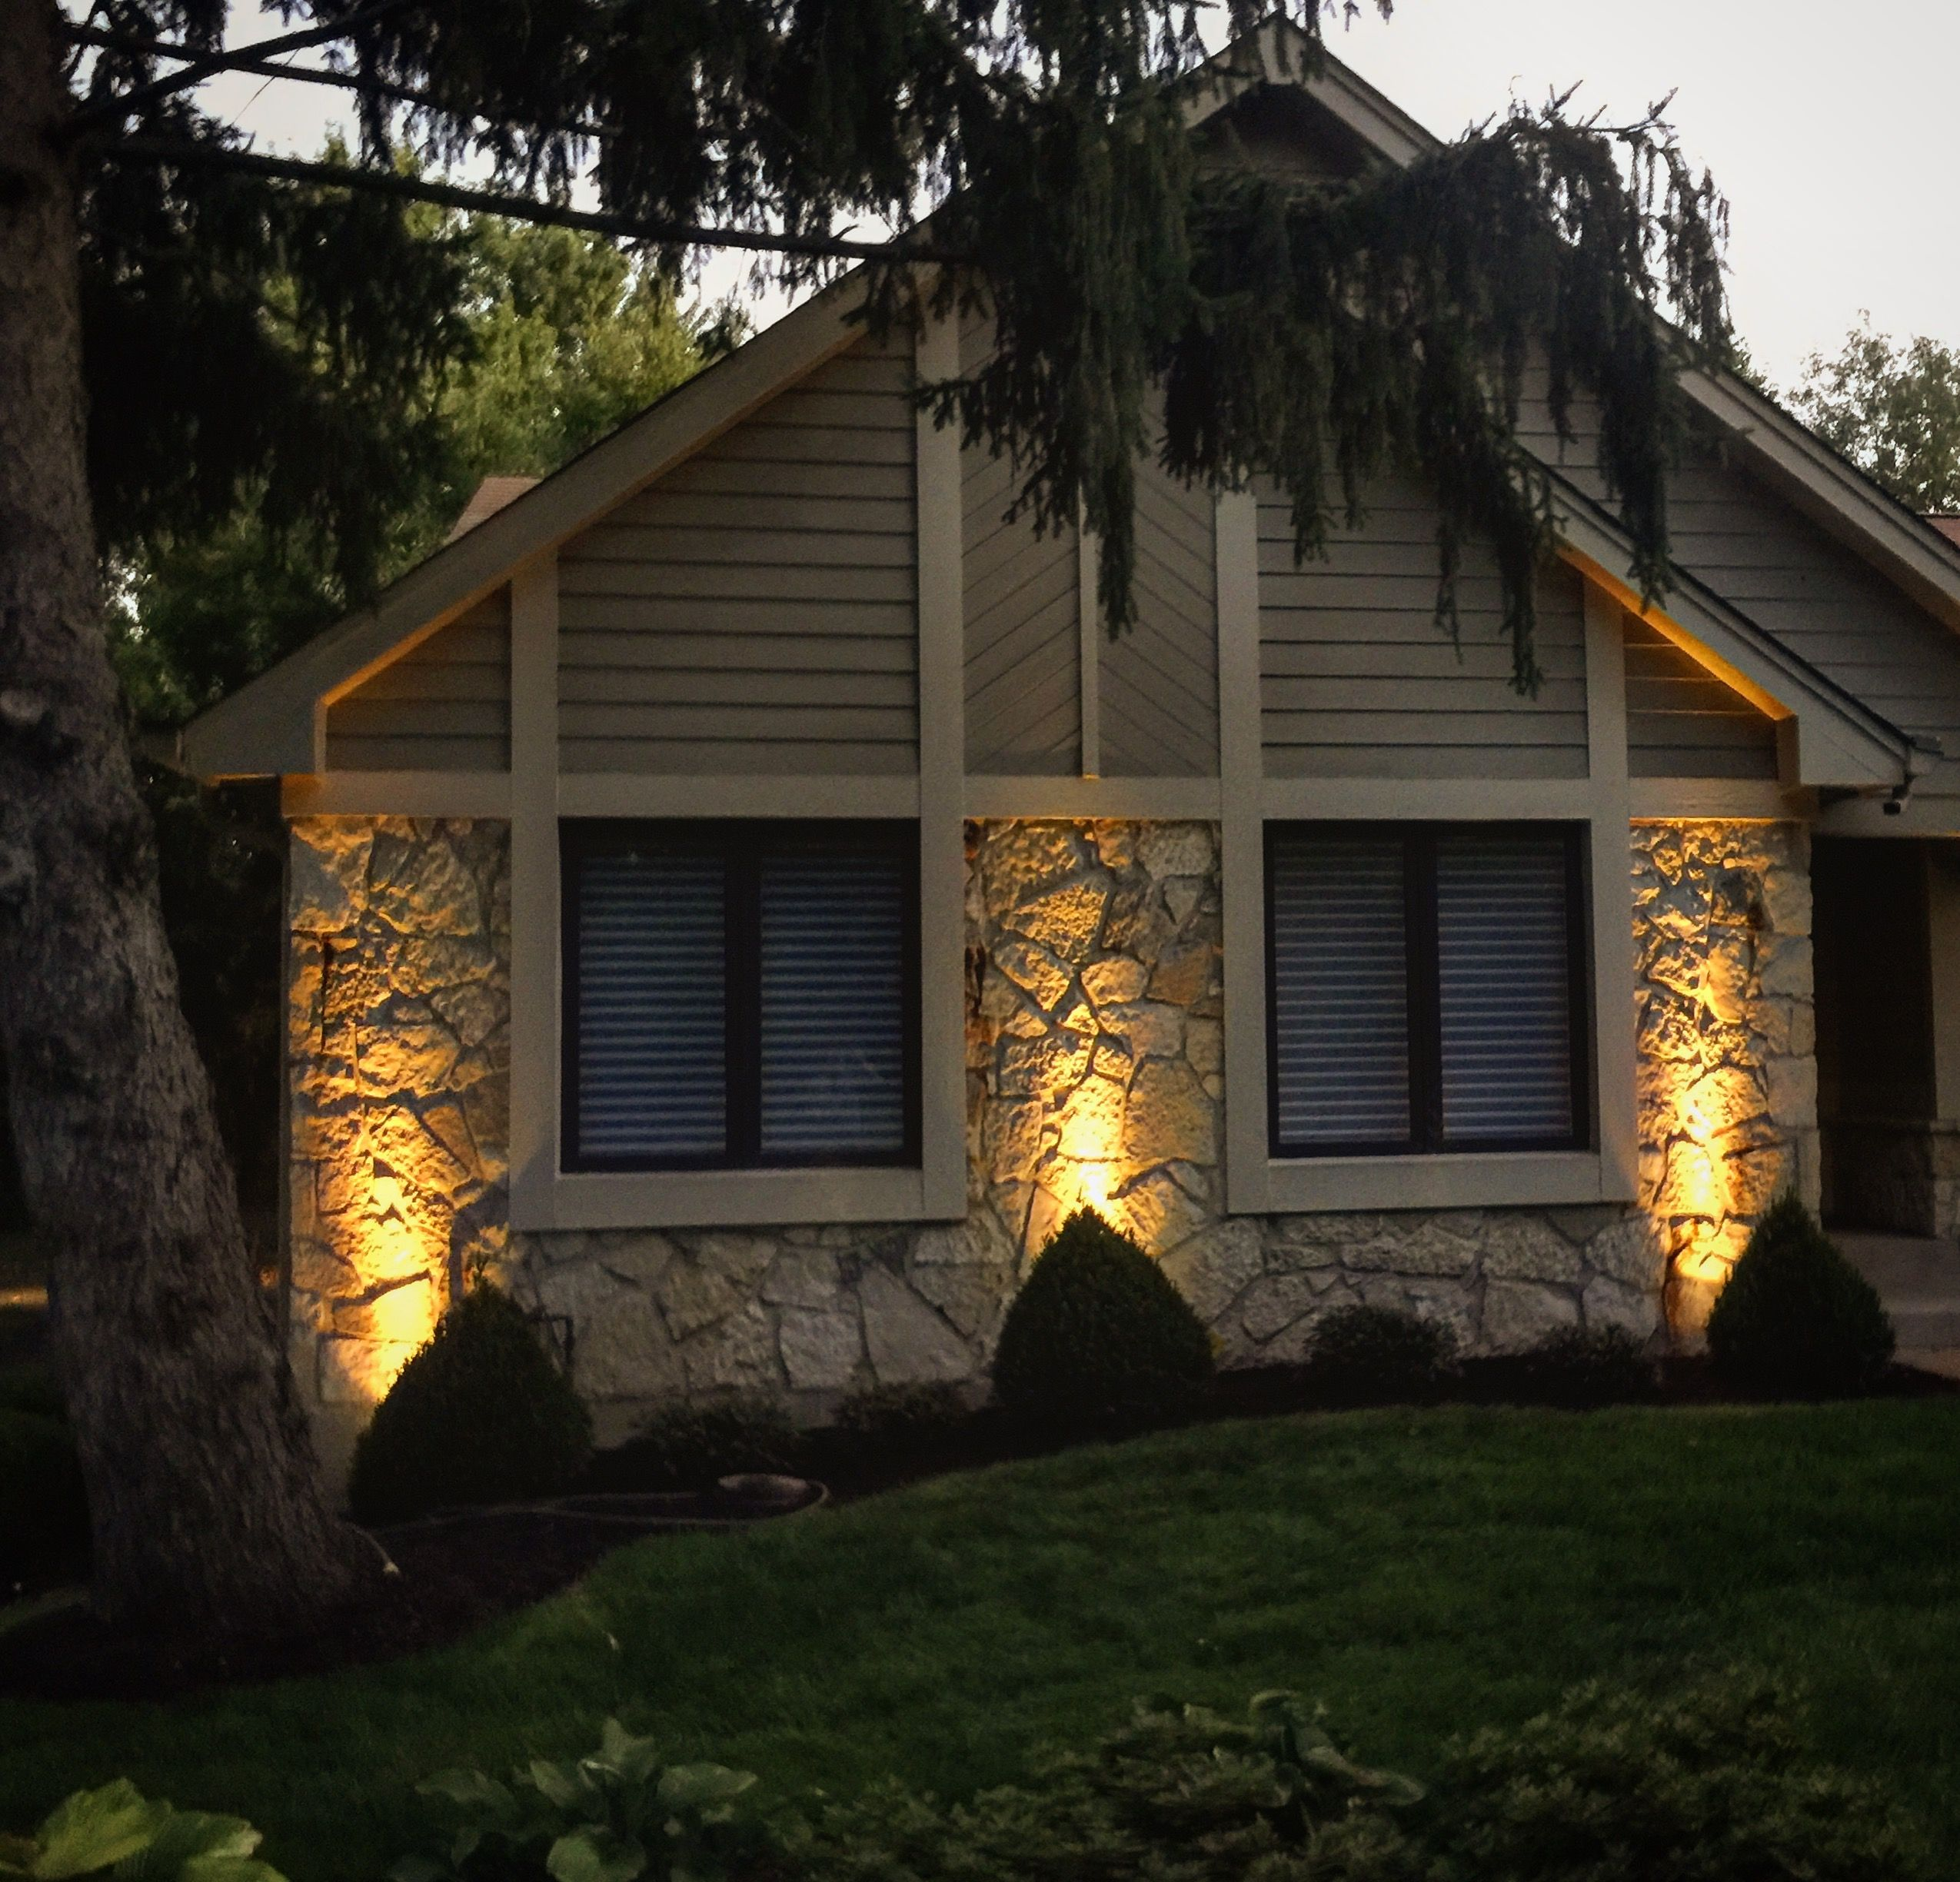 Beautiful Outdoor Lighting Love This Wall Wash Outdoor Lighting Design By Lorraine Lighting Irrigation 314 368 6548 St L Outdoor Lighting Design